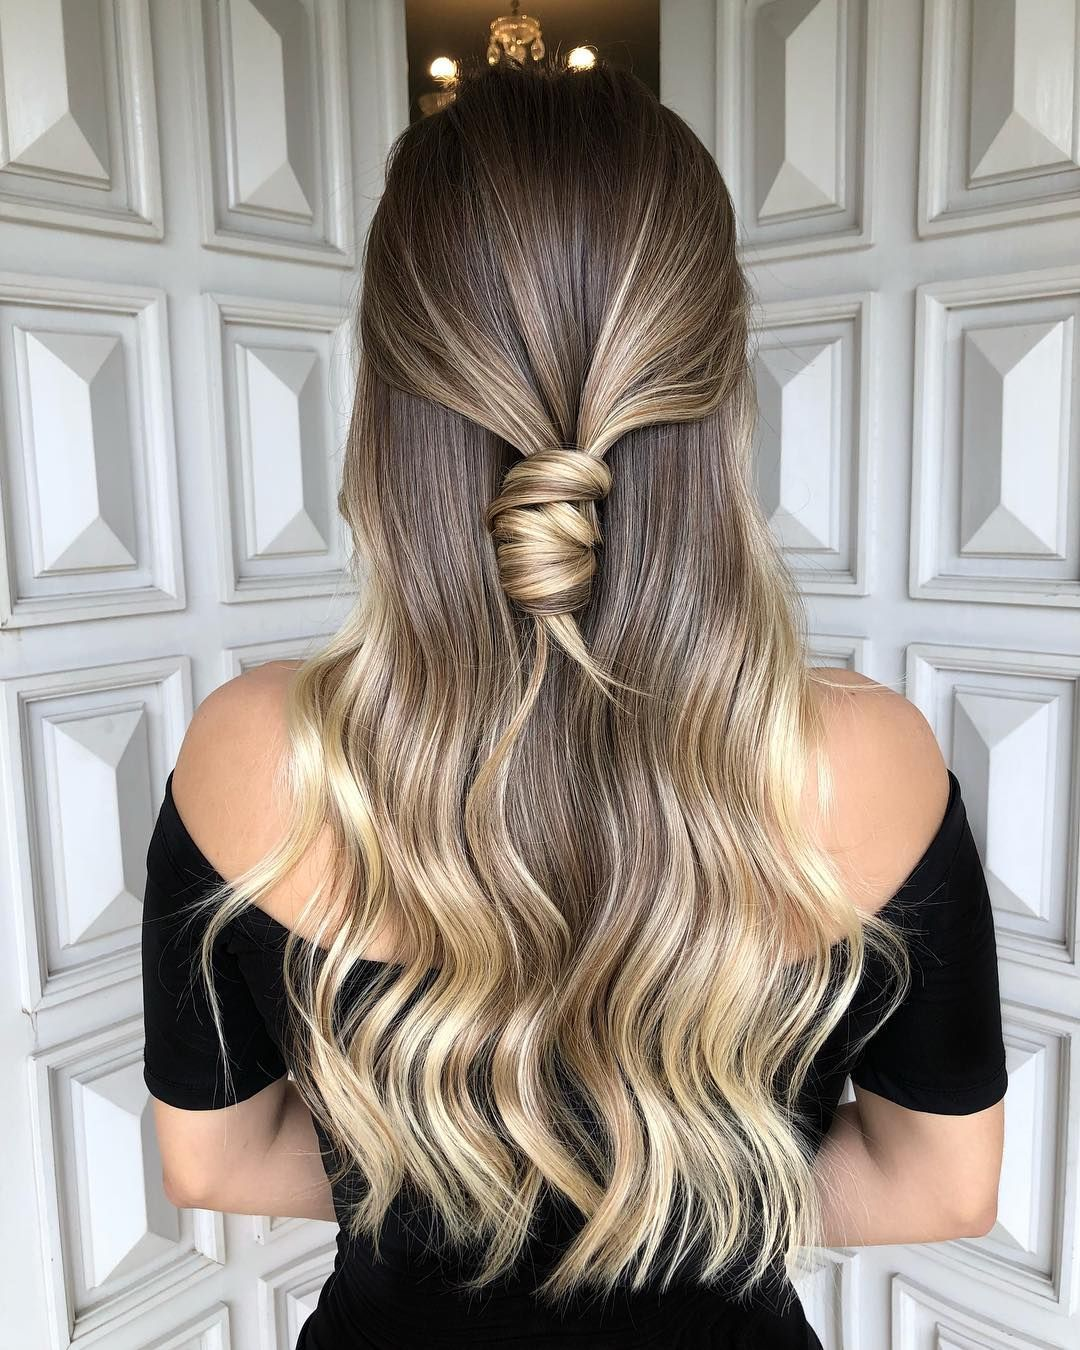 Ombre Hairstyles Gorgeous 50 Hottest Ombre Hair Color Ideas For 2018  Ombre Hairstyles